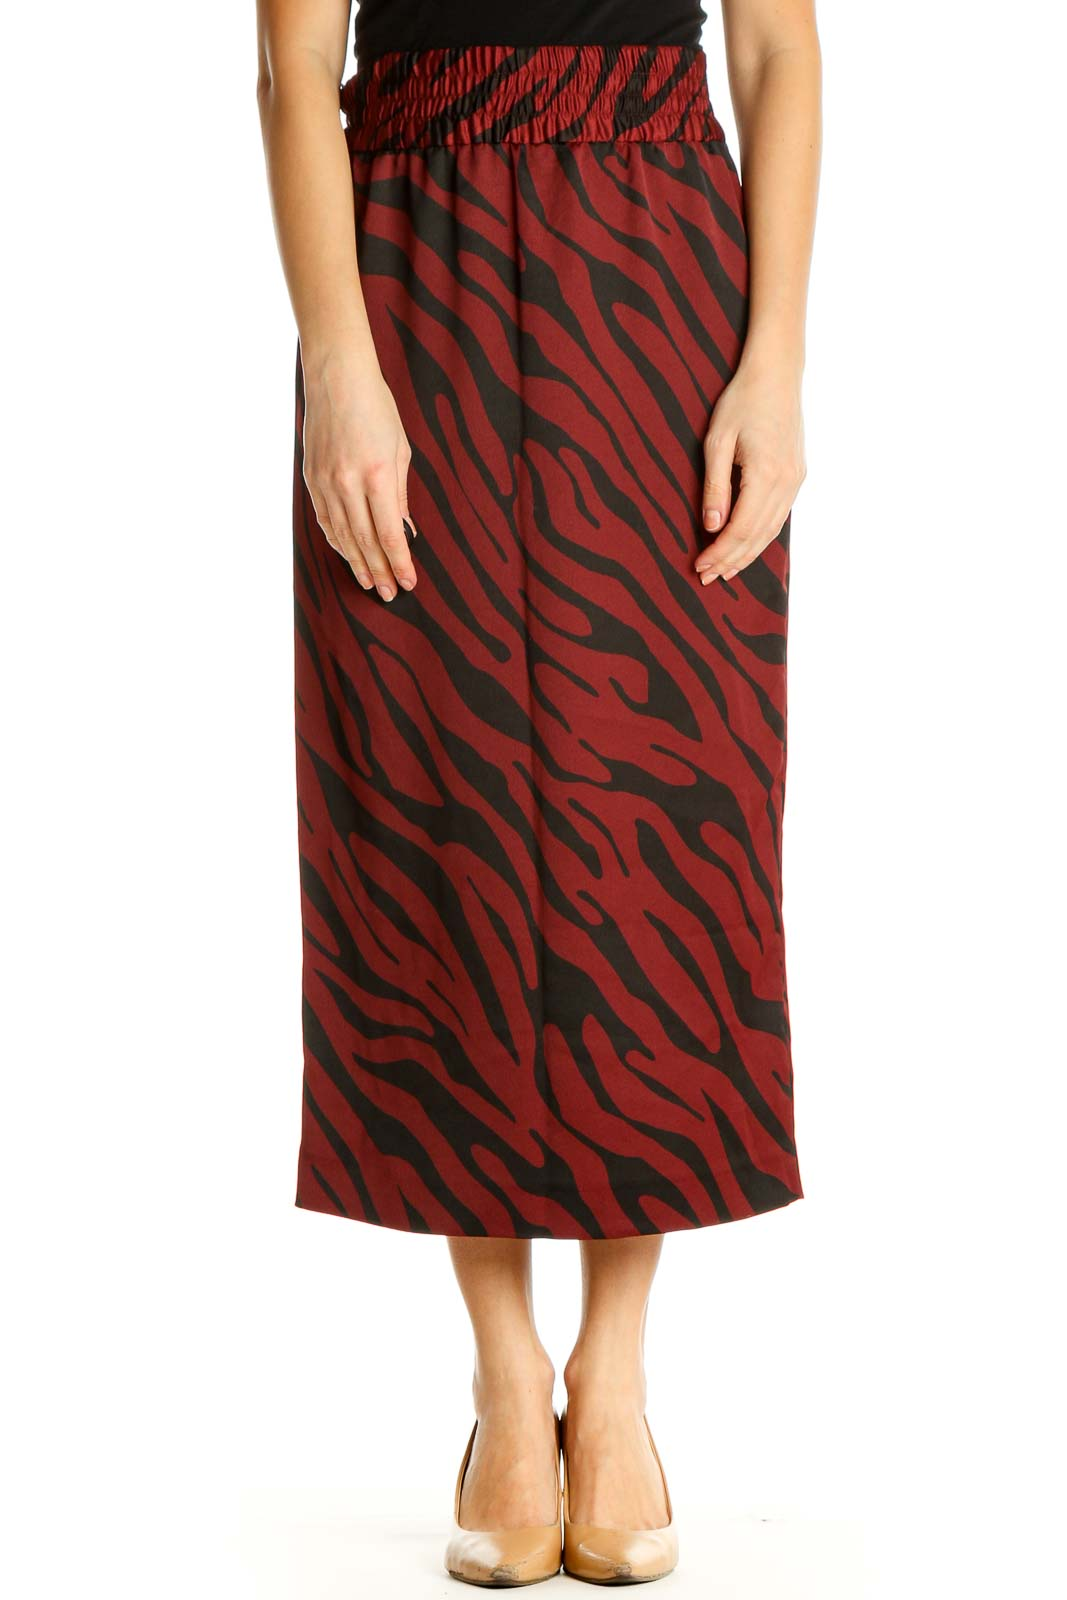 Black Animal Print Classic A-Line Skirt Front